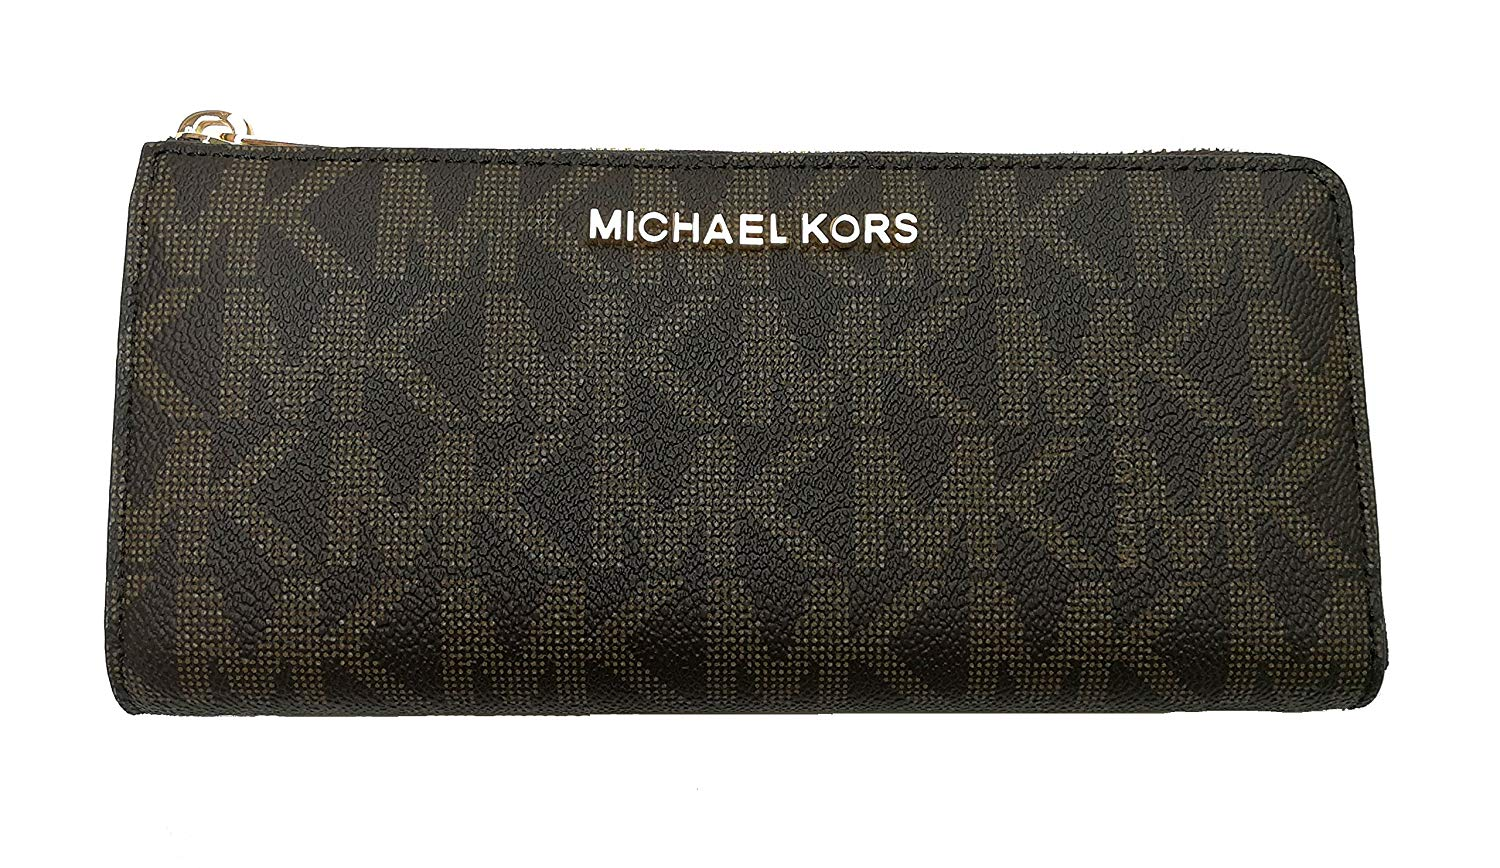 Michael Kors Bedford Large Three Quarter Zip Around Pebbled Leather Wallet (Brown/Acorn)